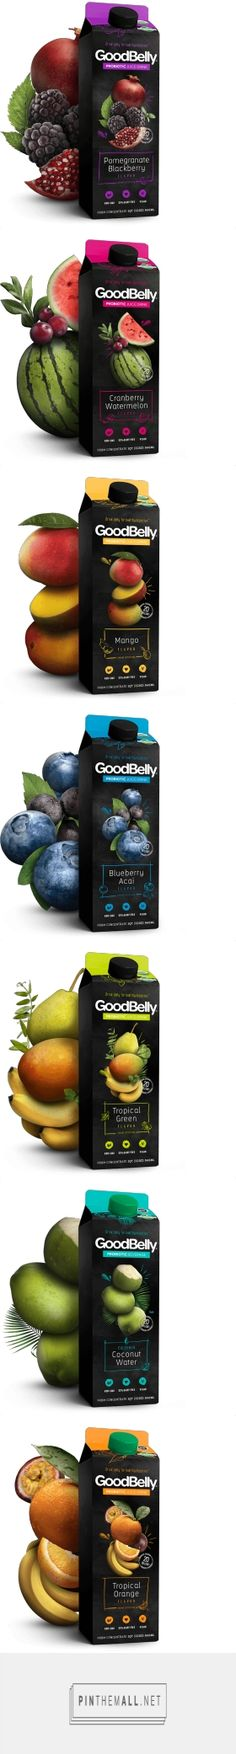 GoodBelly By The Glass probiotic fruit drink designed by LRXD. Pin curated by SFields99. #packaging #design